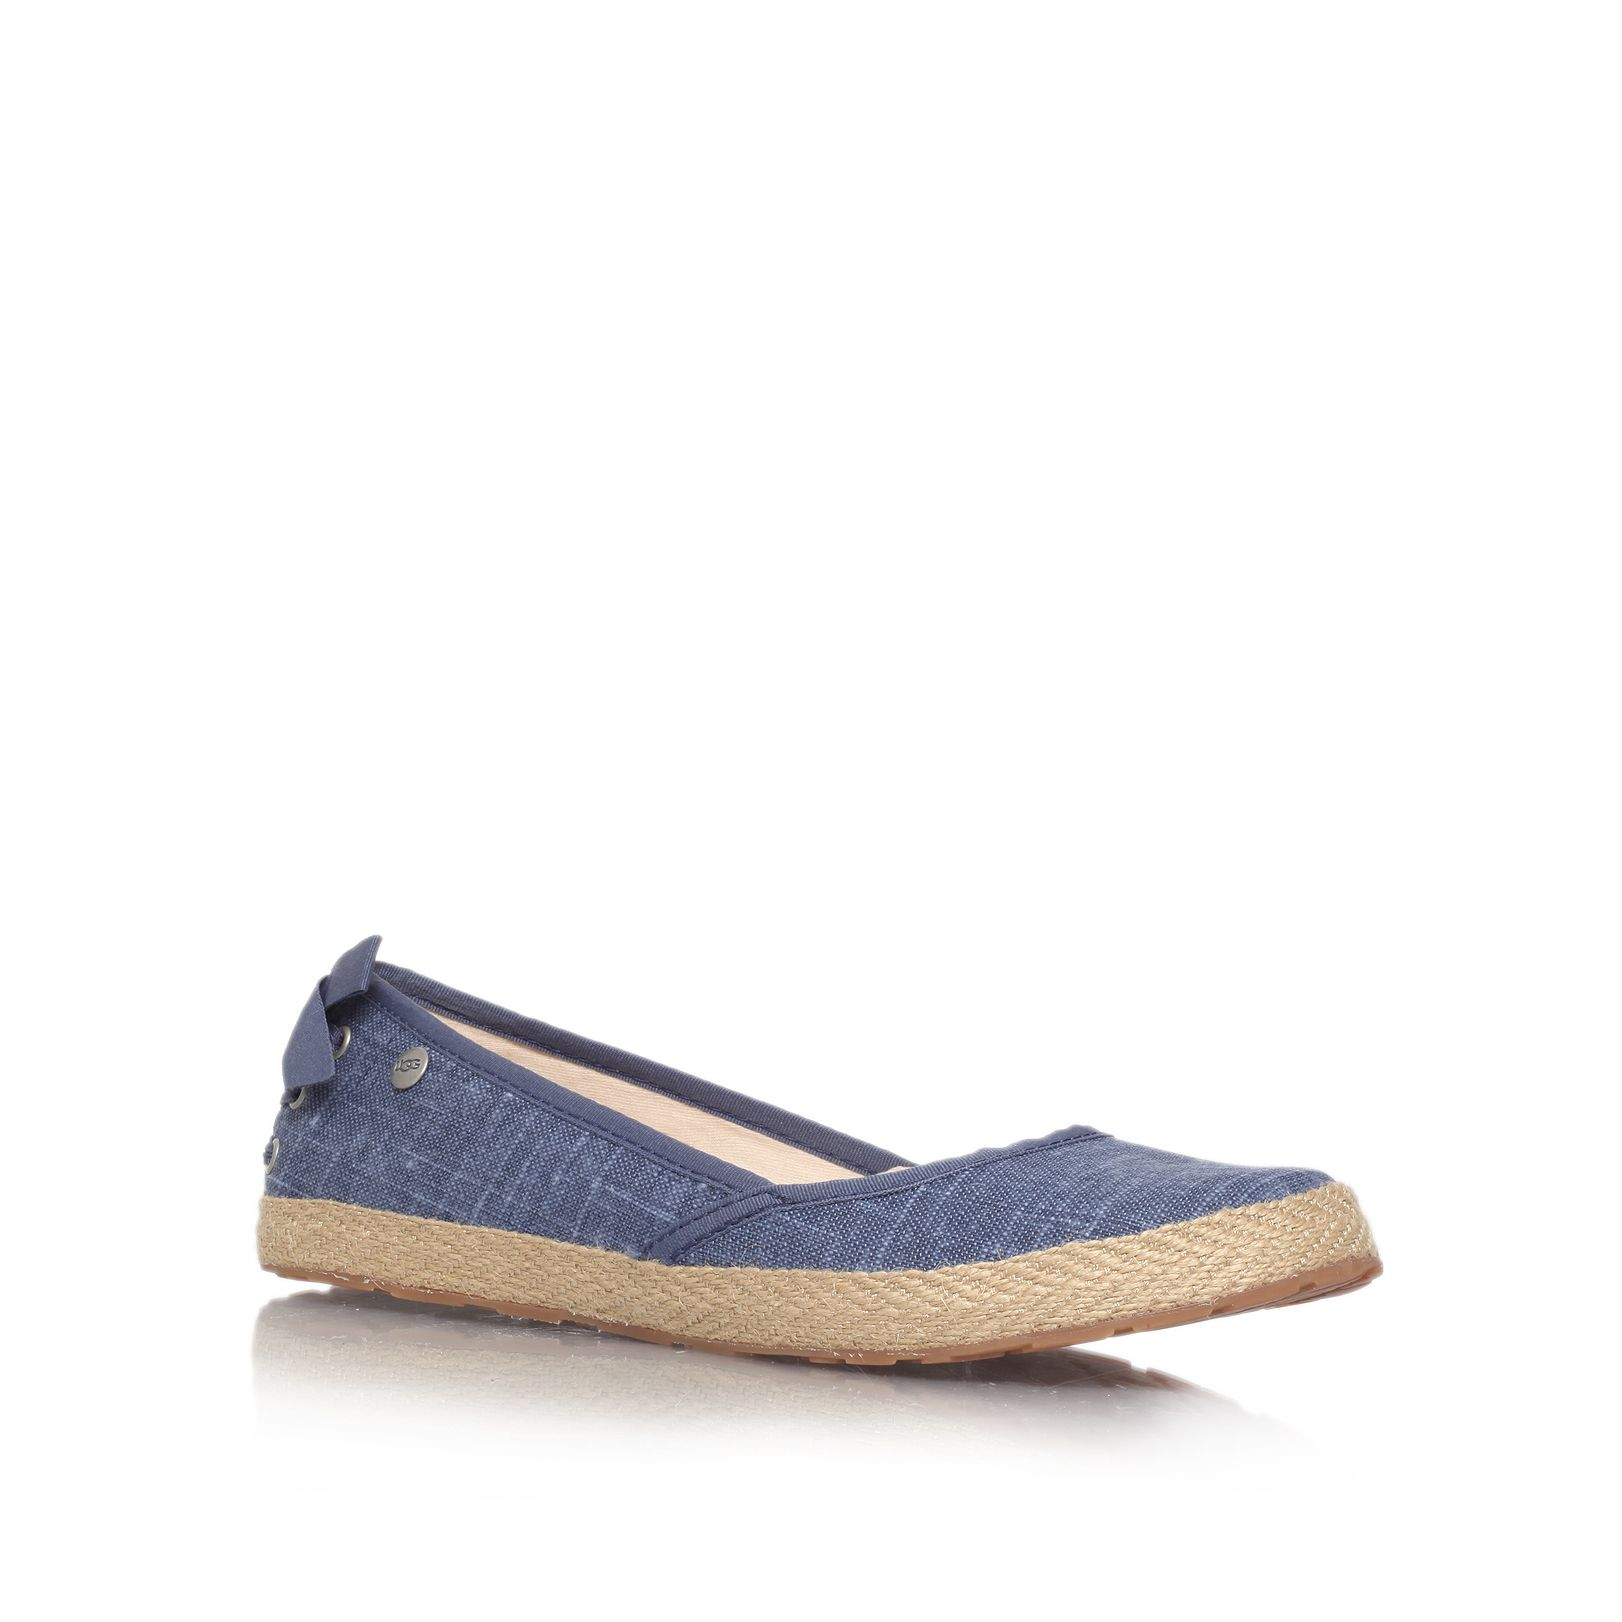 Indah espadrille shoes